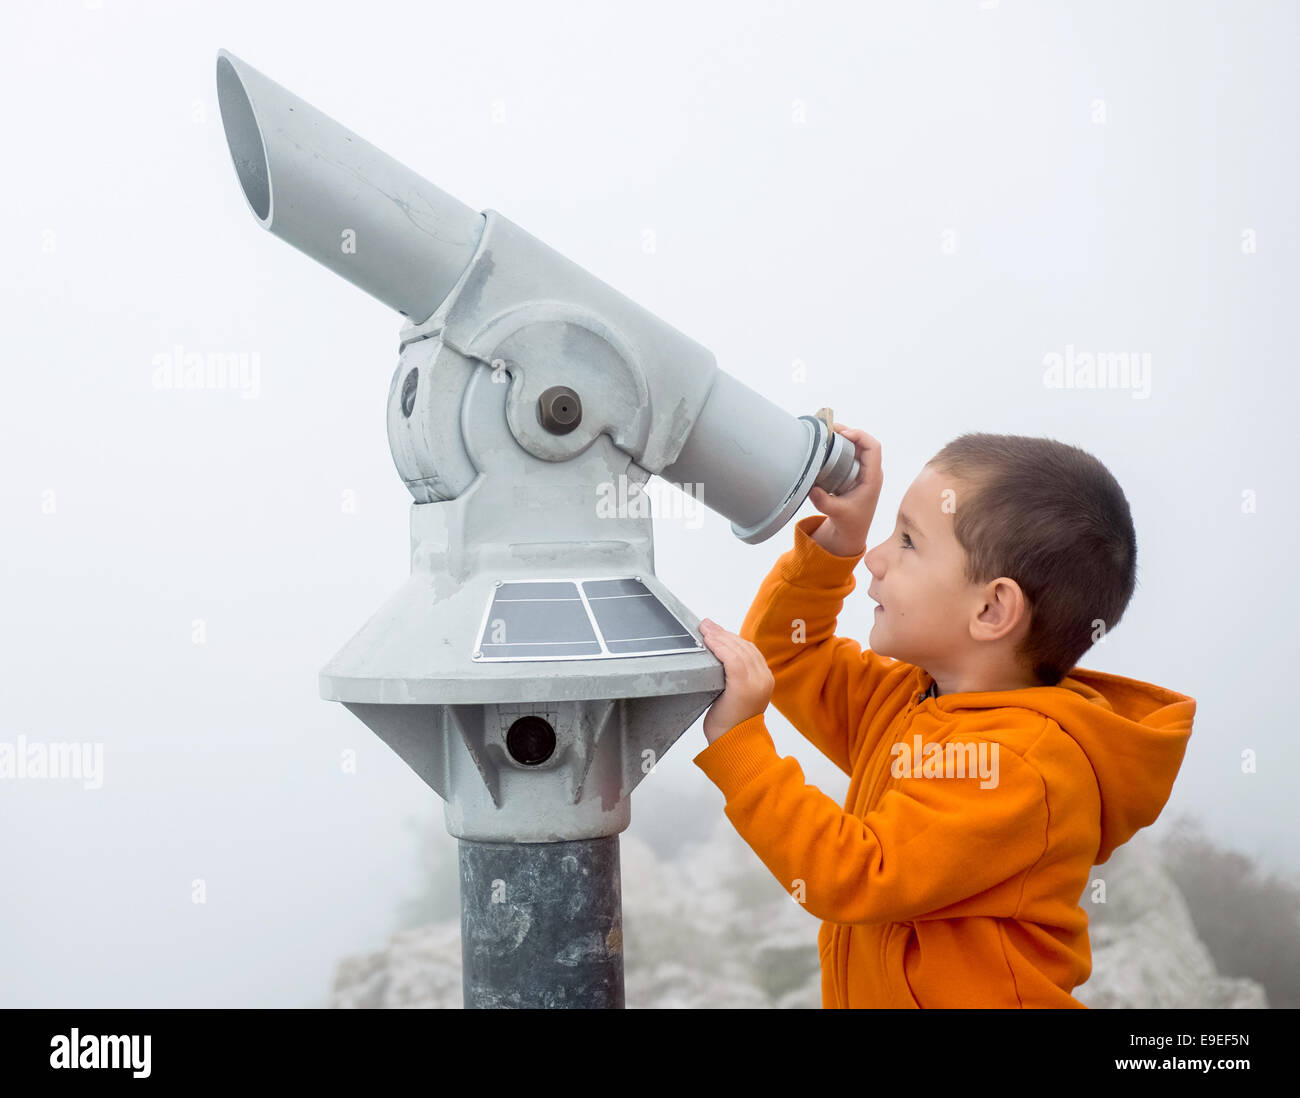 Boy looking into the sky through a monocular - Stock Image